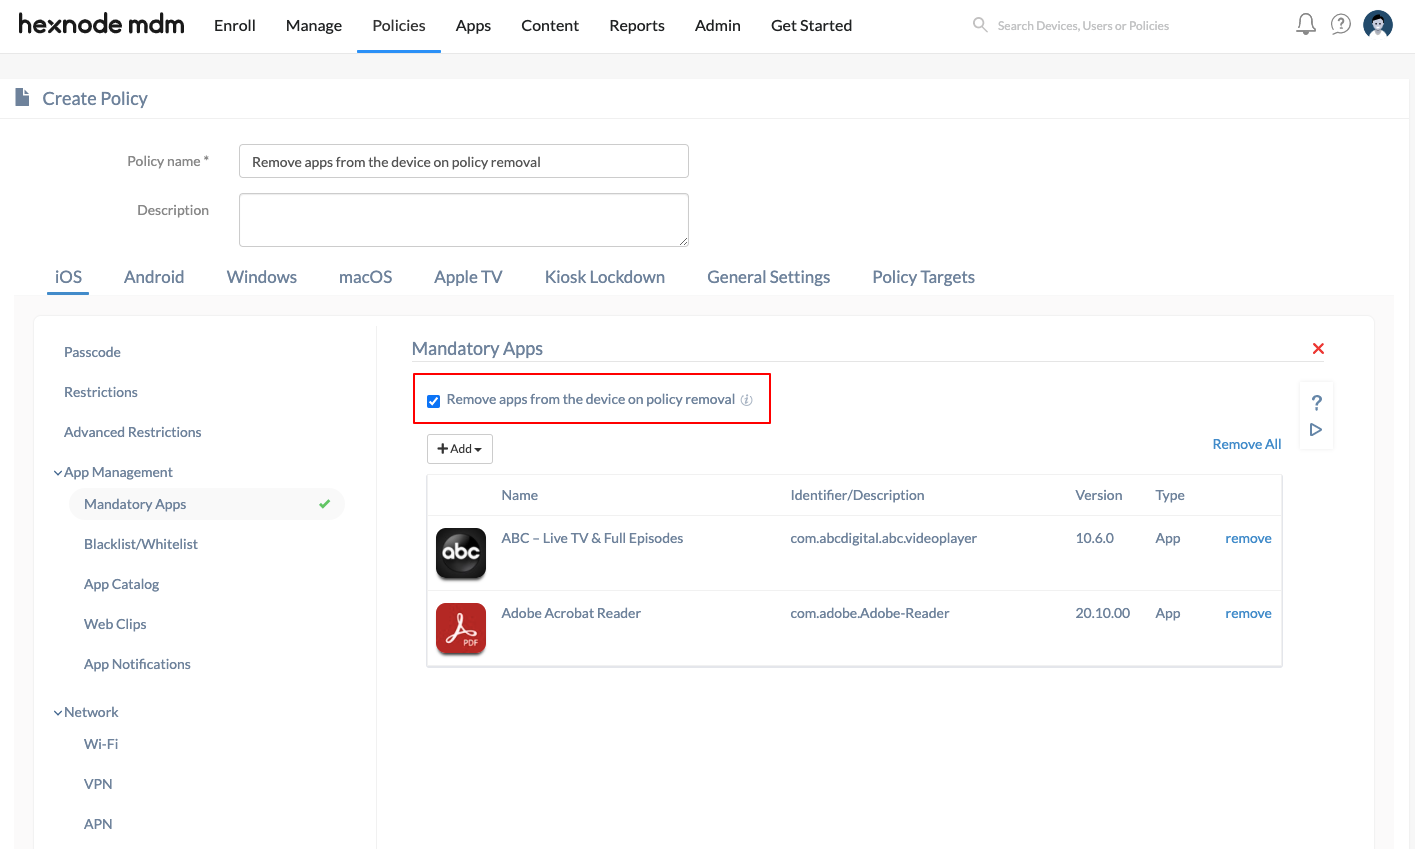 Wipe corporate data or apps from a device using the mandatory apps feature in Hexnode